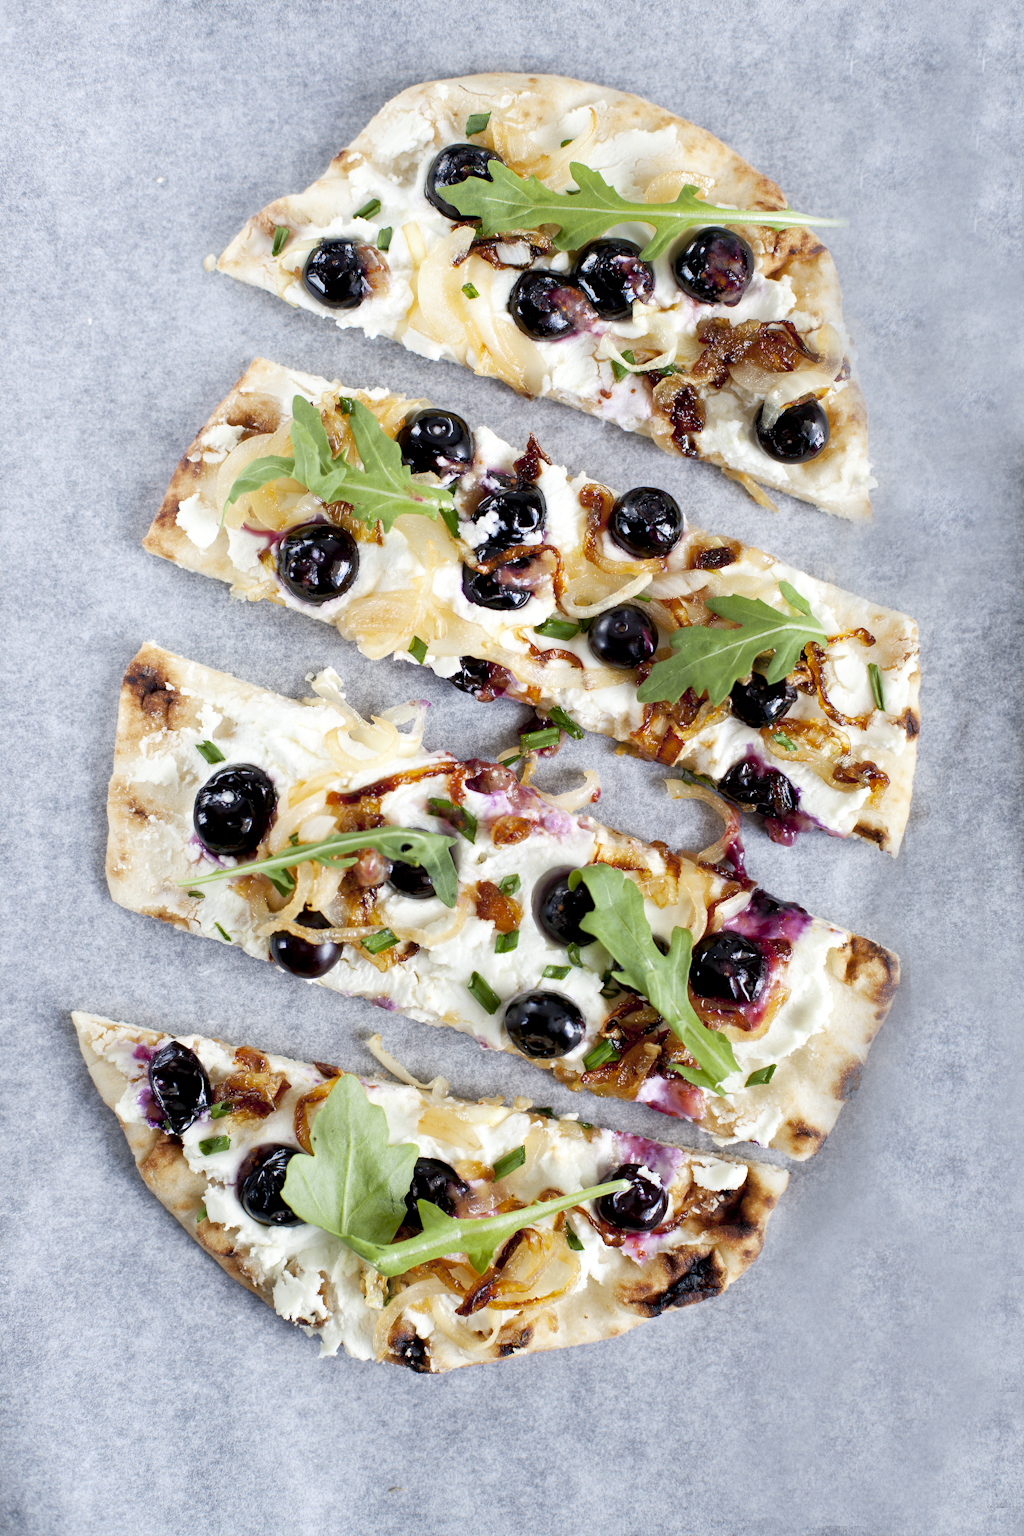 Blueberry naan pizza2_Emiliemurmure